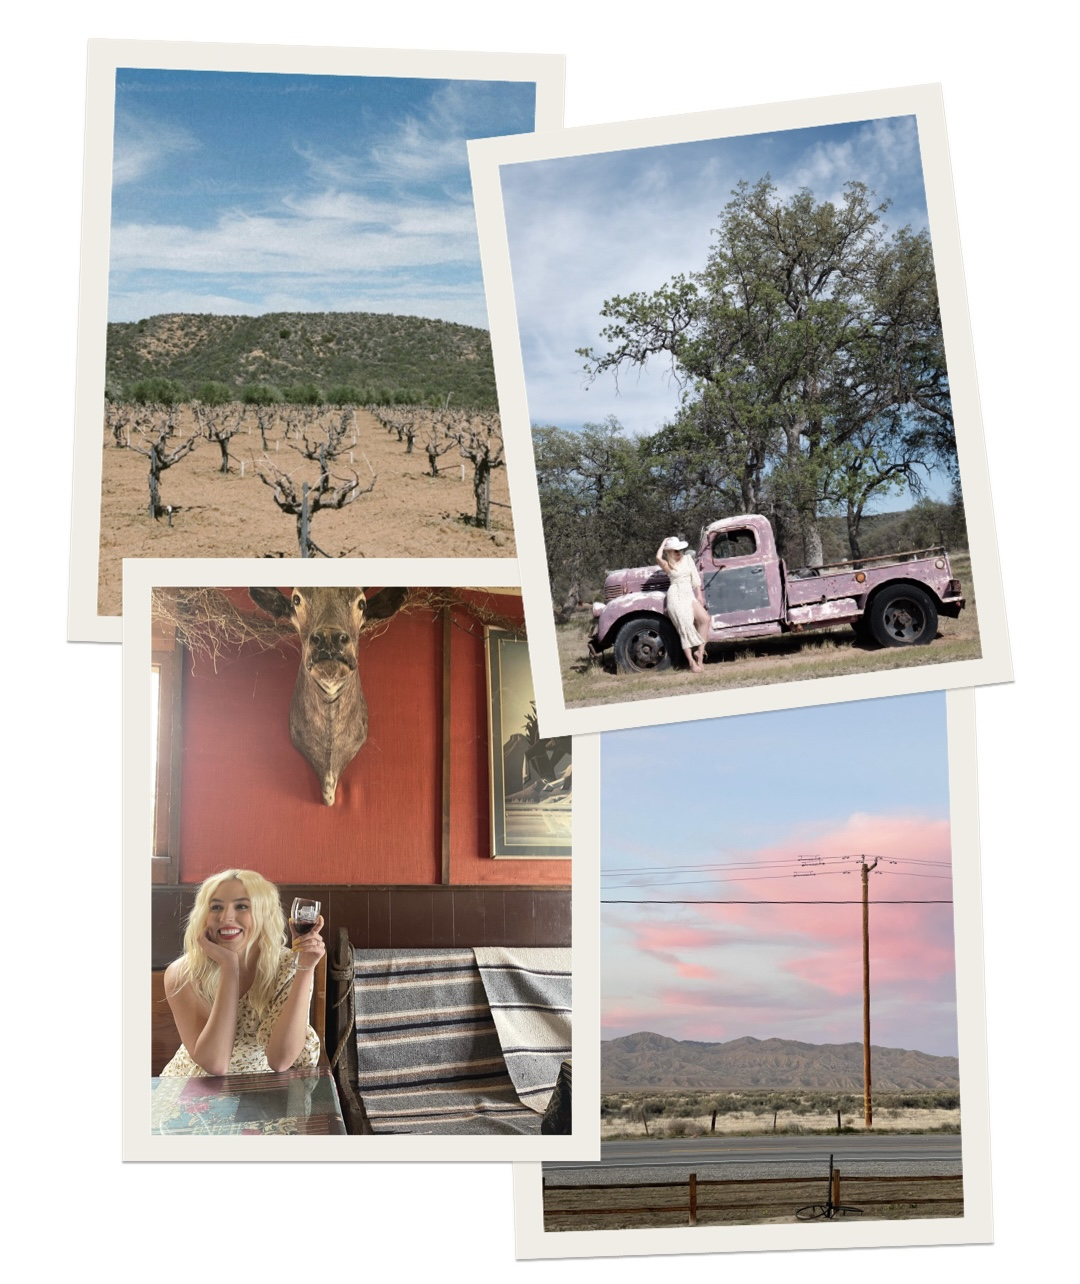 collage of images with outdoor photos and woman drinking wine